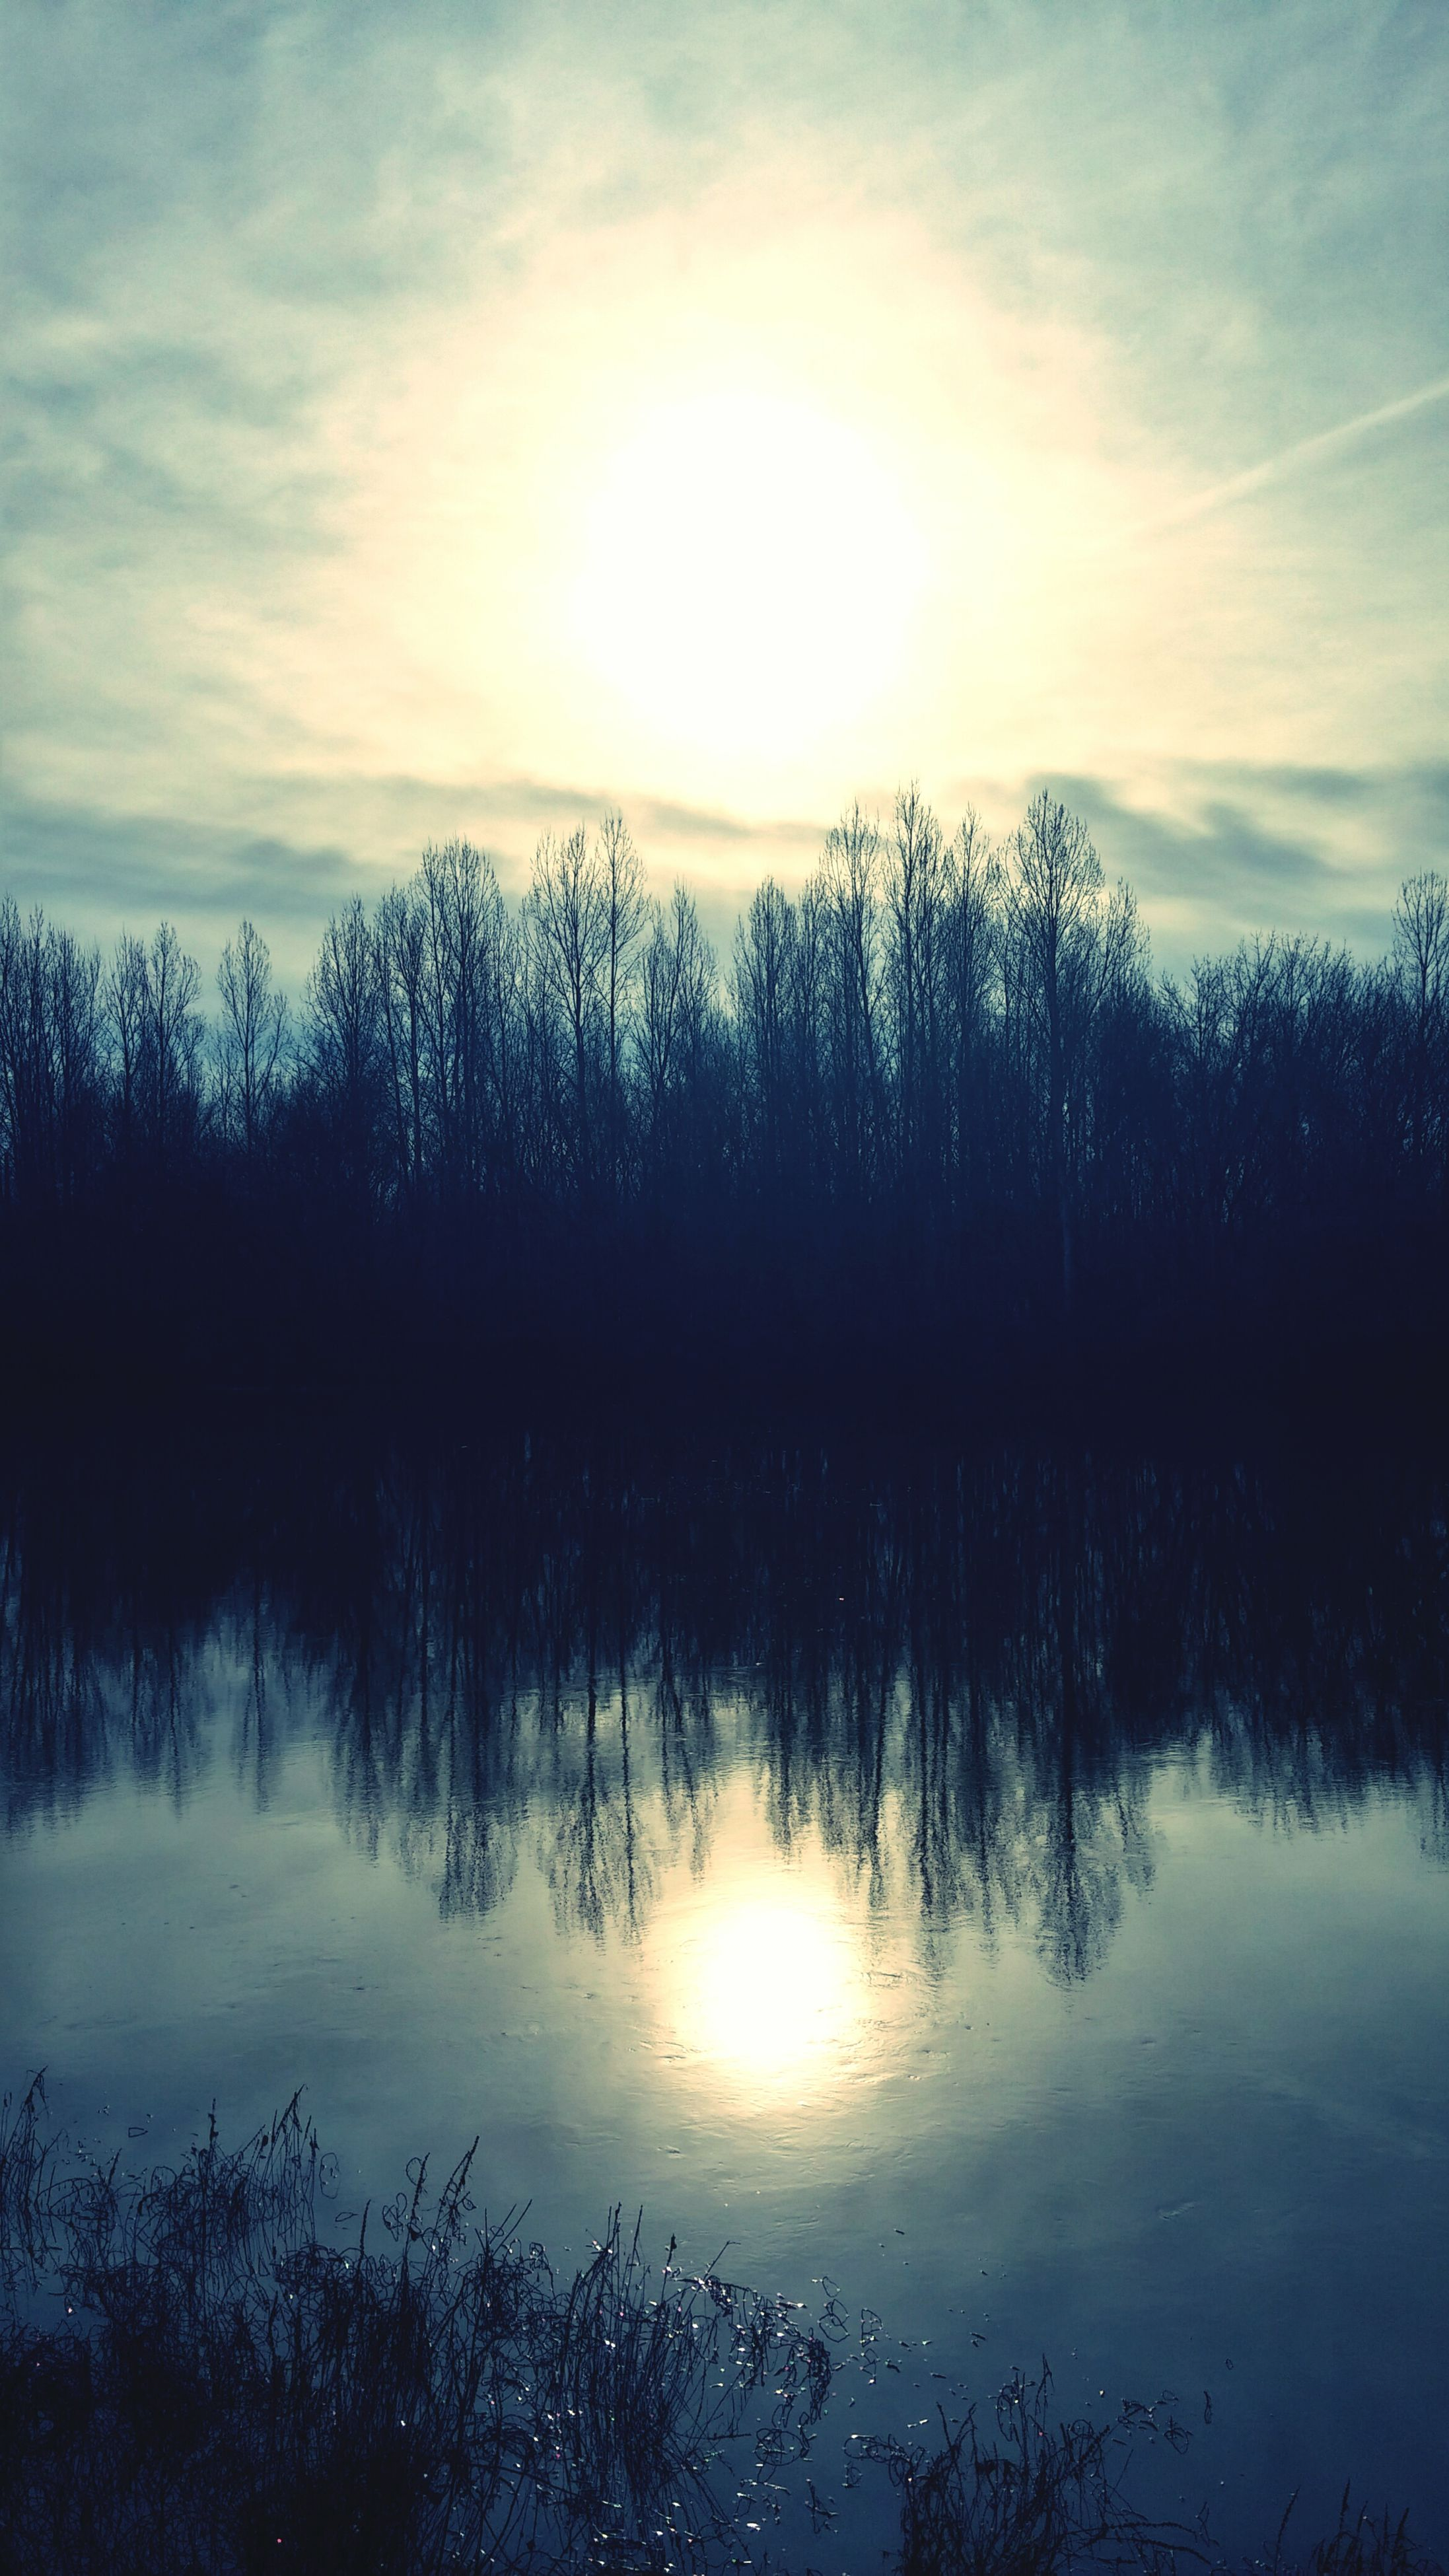 reflection, water, tranquil scene, lake, tranquility, scenics, tree, sky, beauty in nature, sunset, sun, nature, silhouette, cloud - sky, idyllic, waterfront, sunlight, cloud, outdoors, bare tree